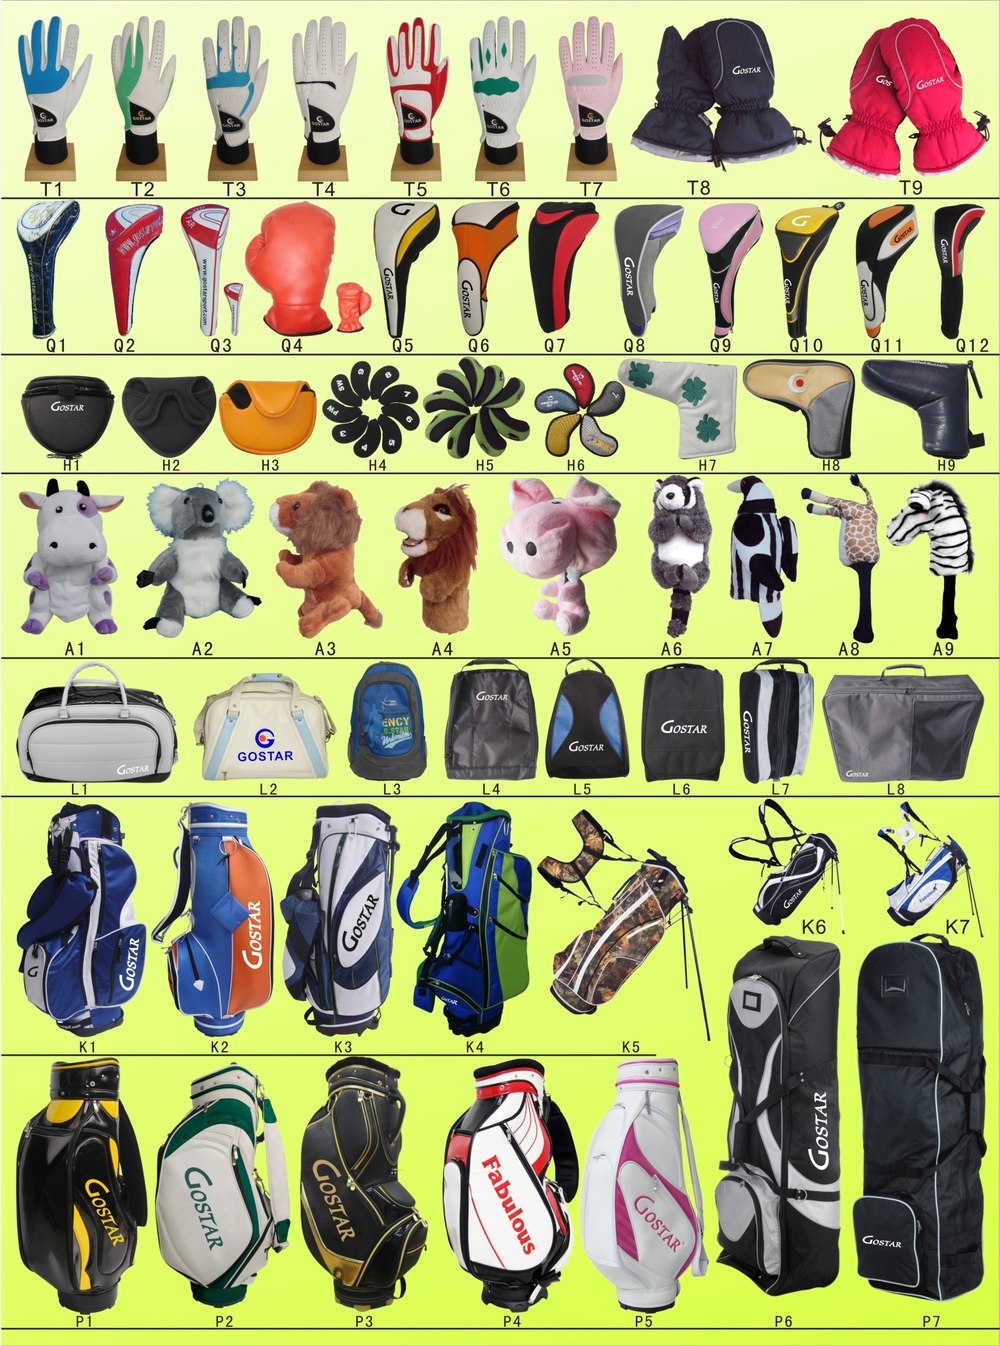 Hot Sales Nylon Stand Bag for Golf